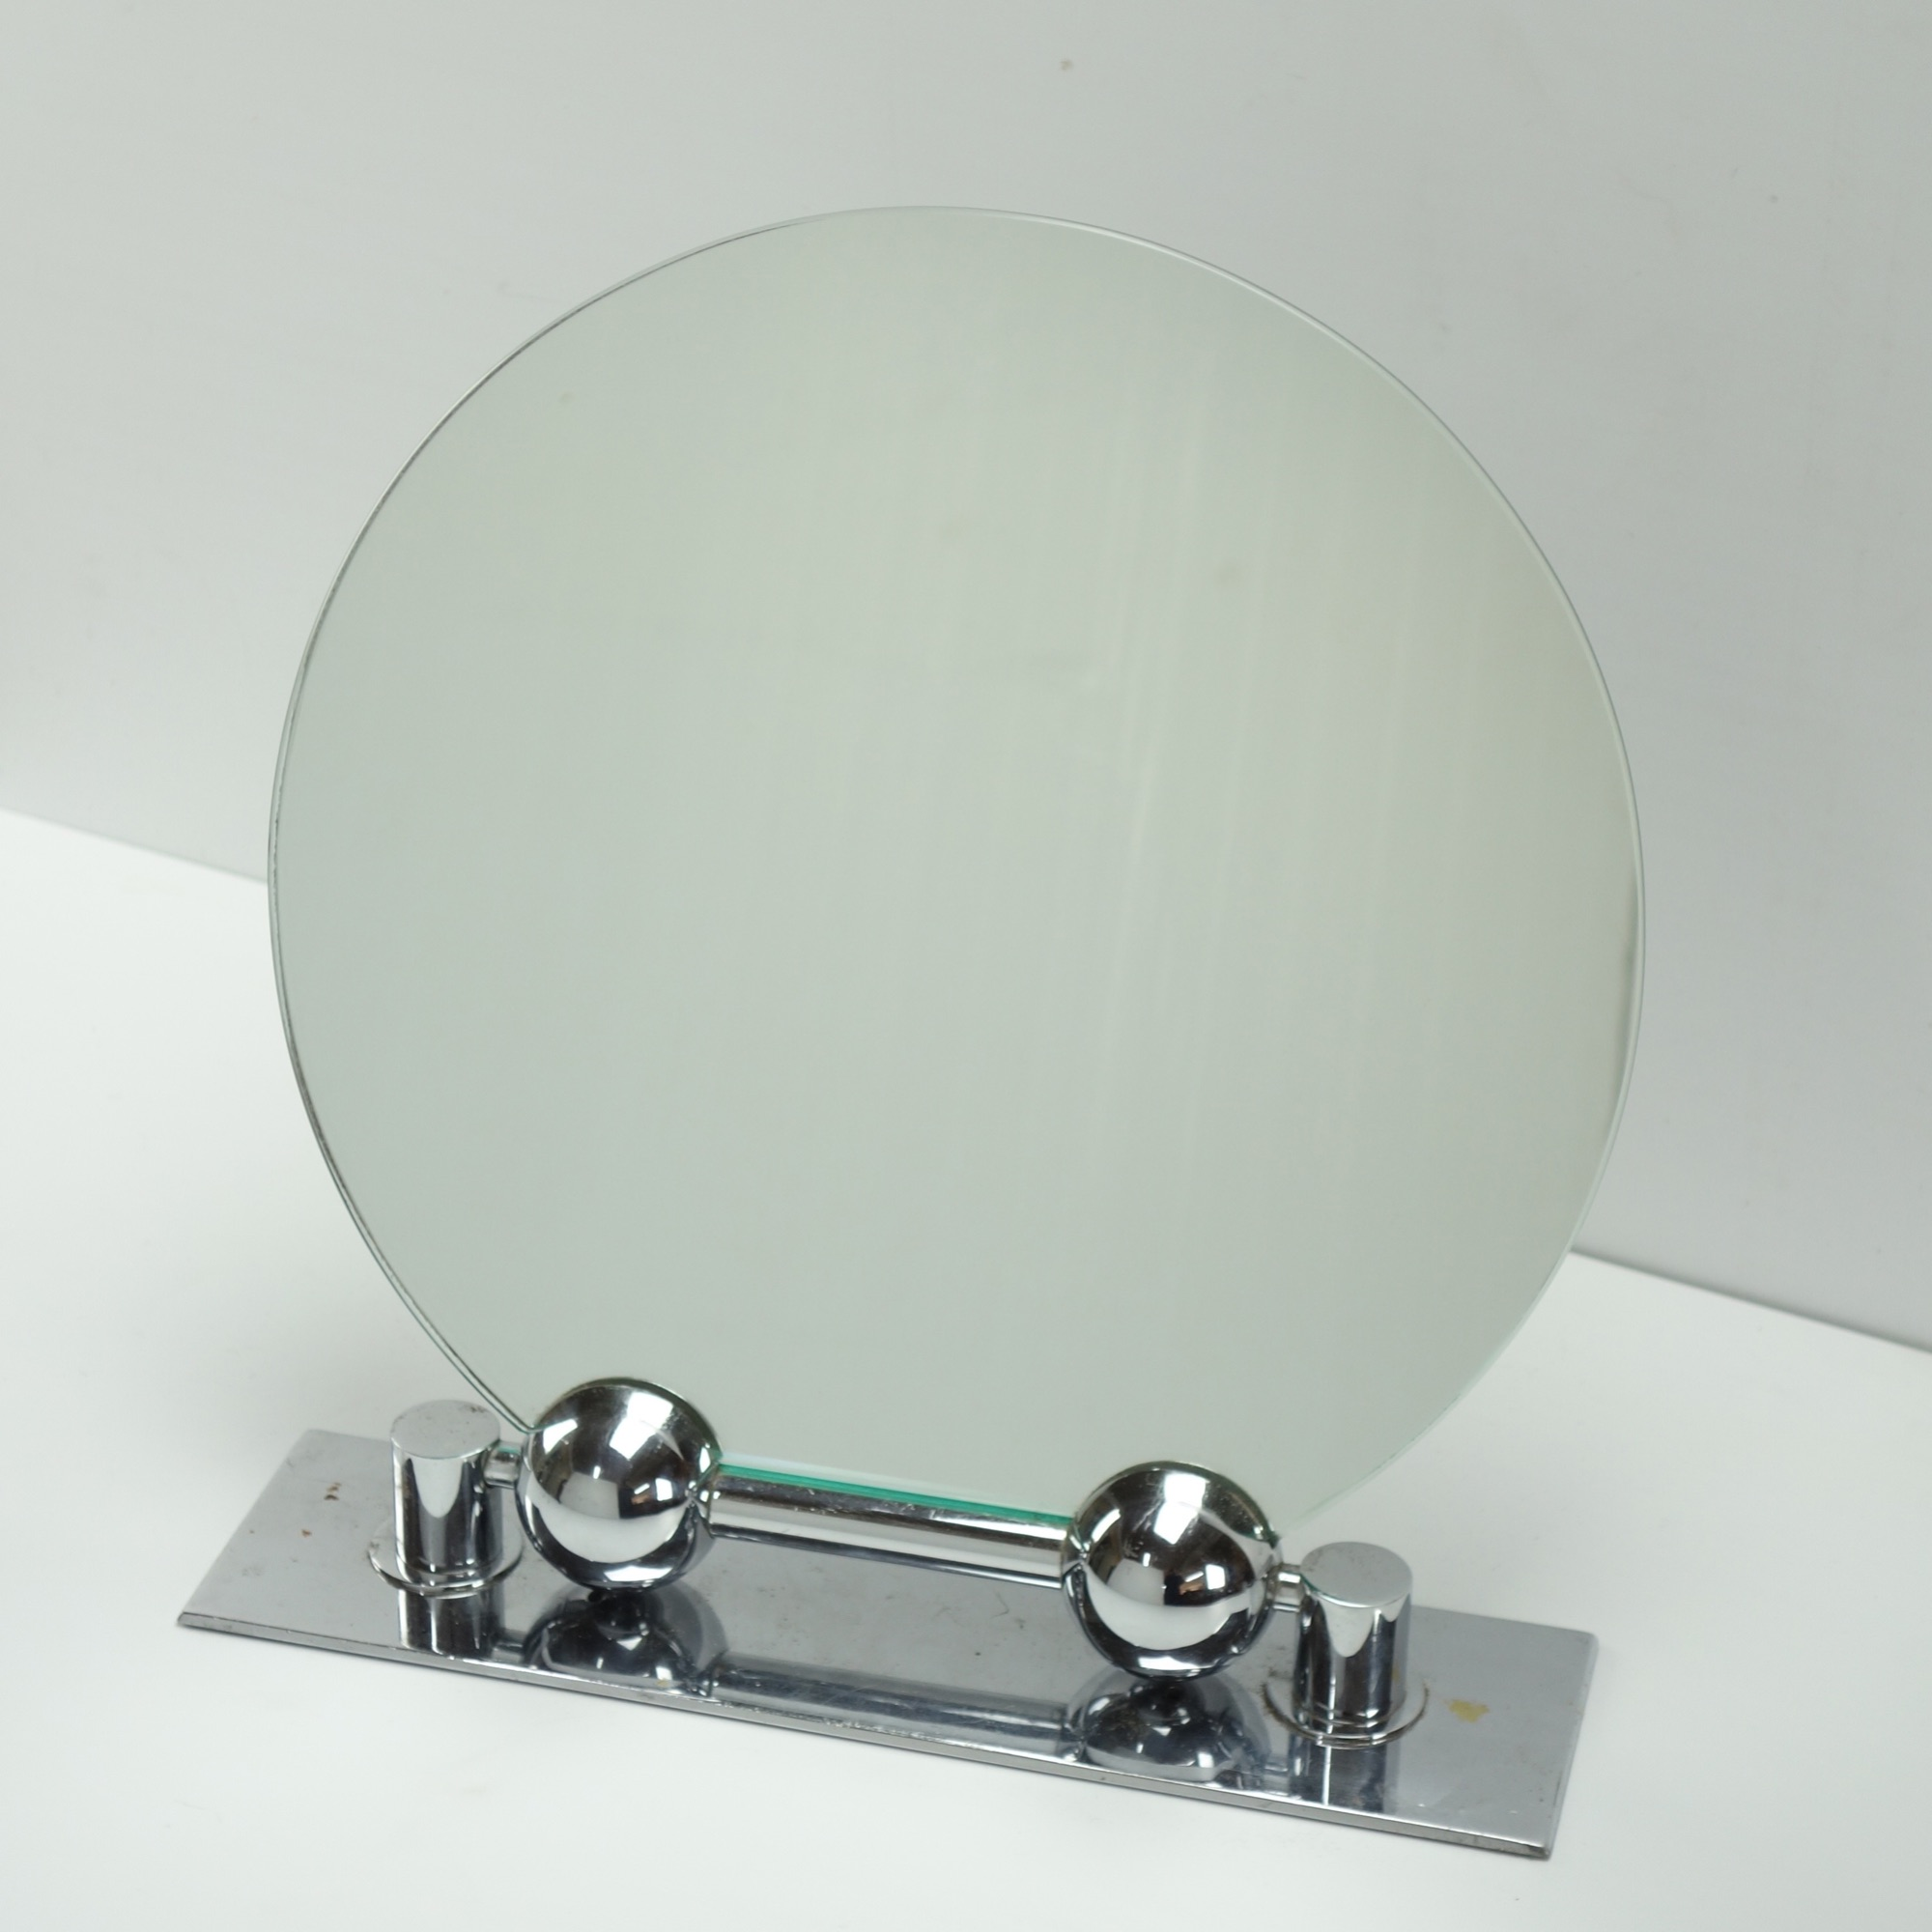 Modernist Table mirror